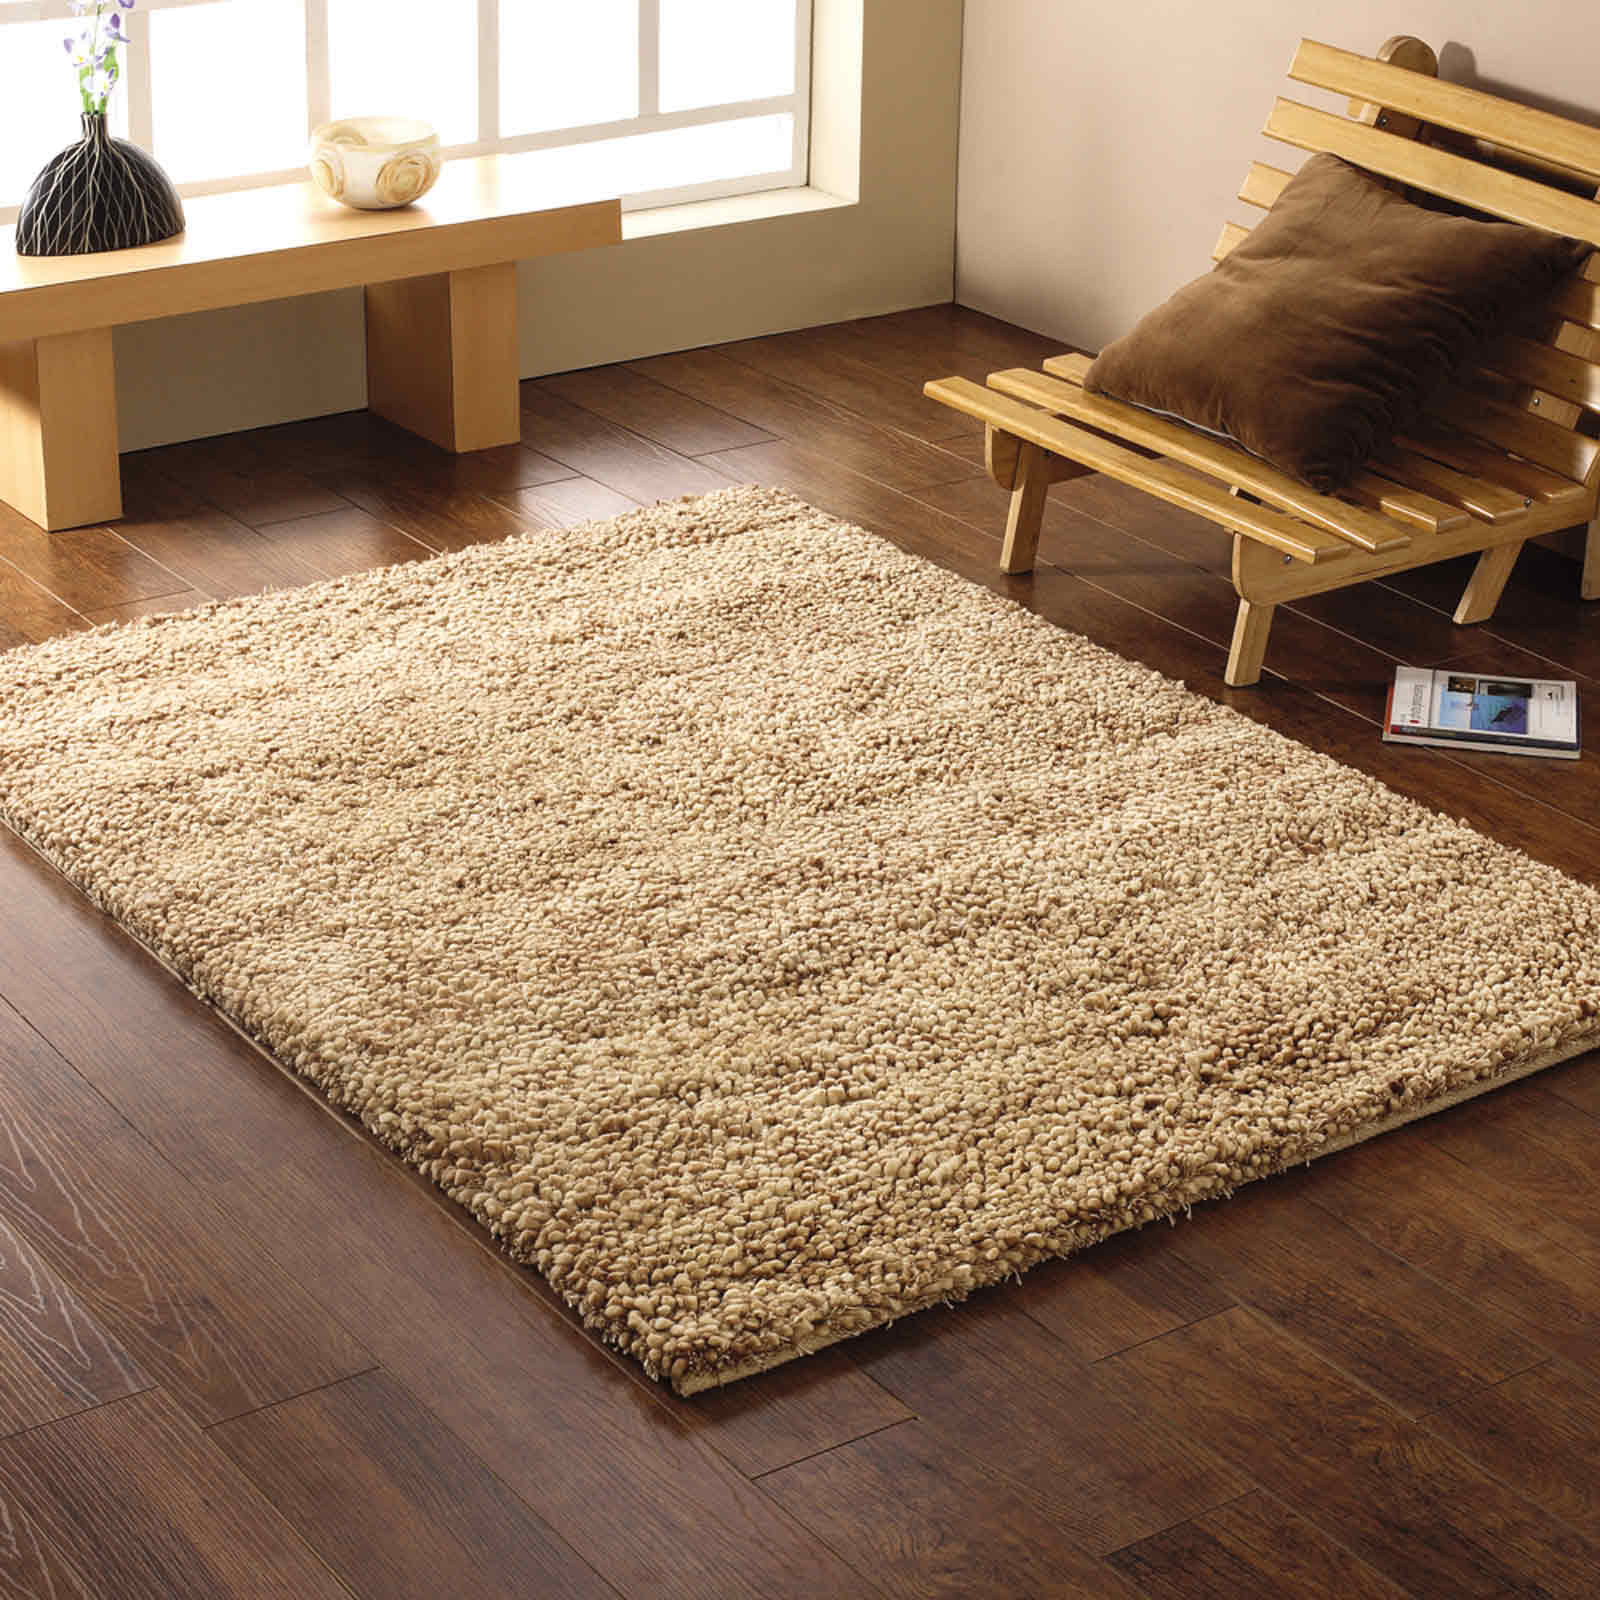 KENSINGTON RUGS - PURE SHAGGY WOOL IN BEIGE